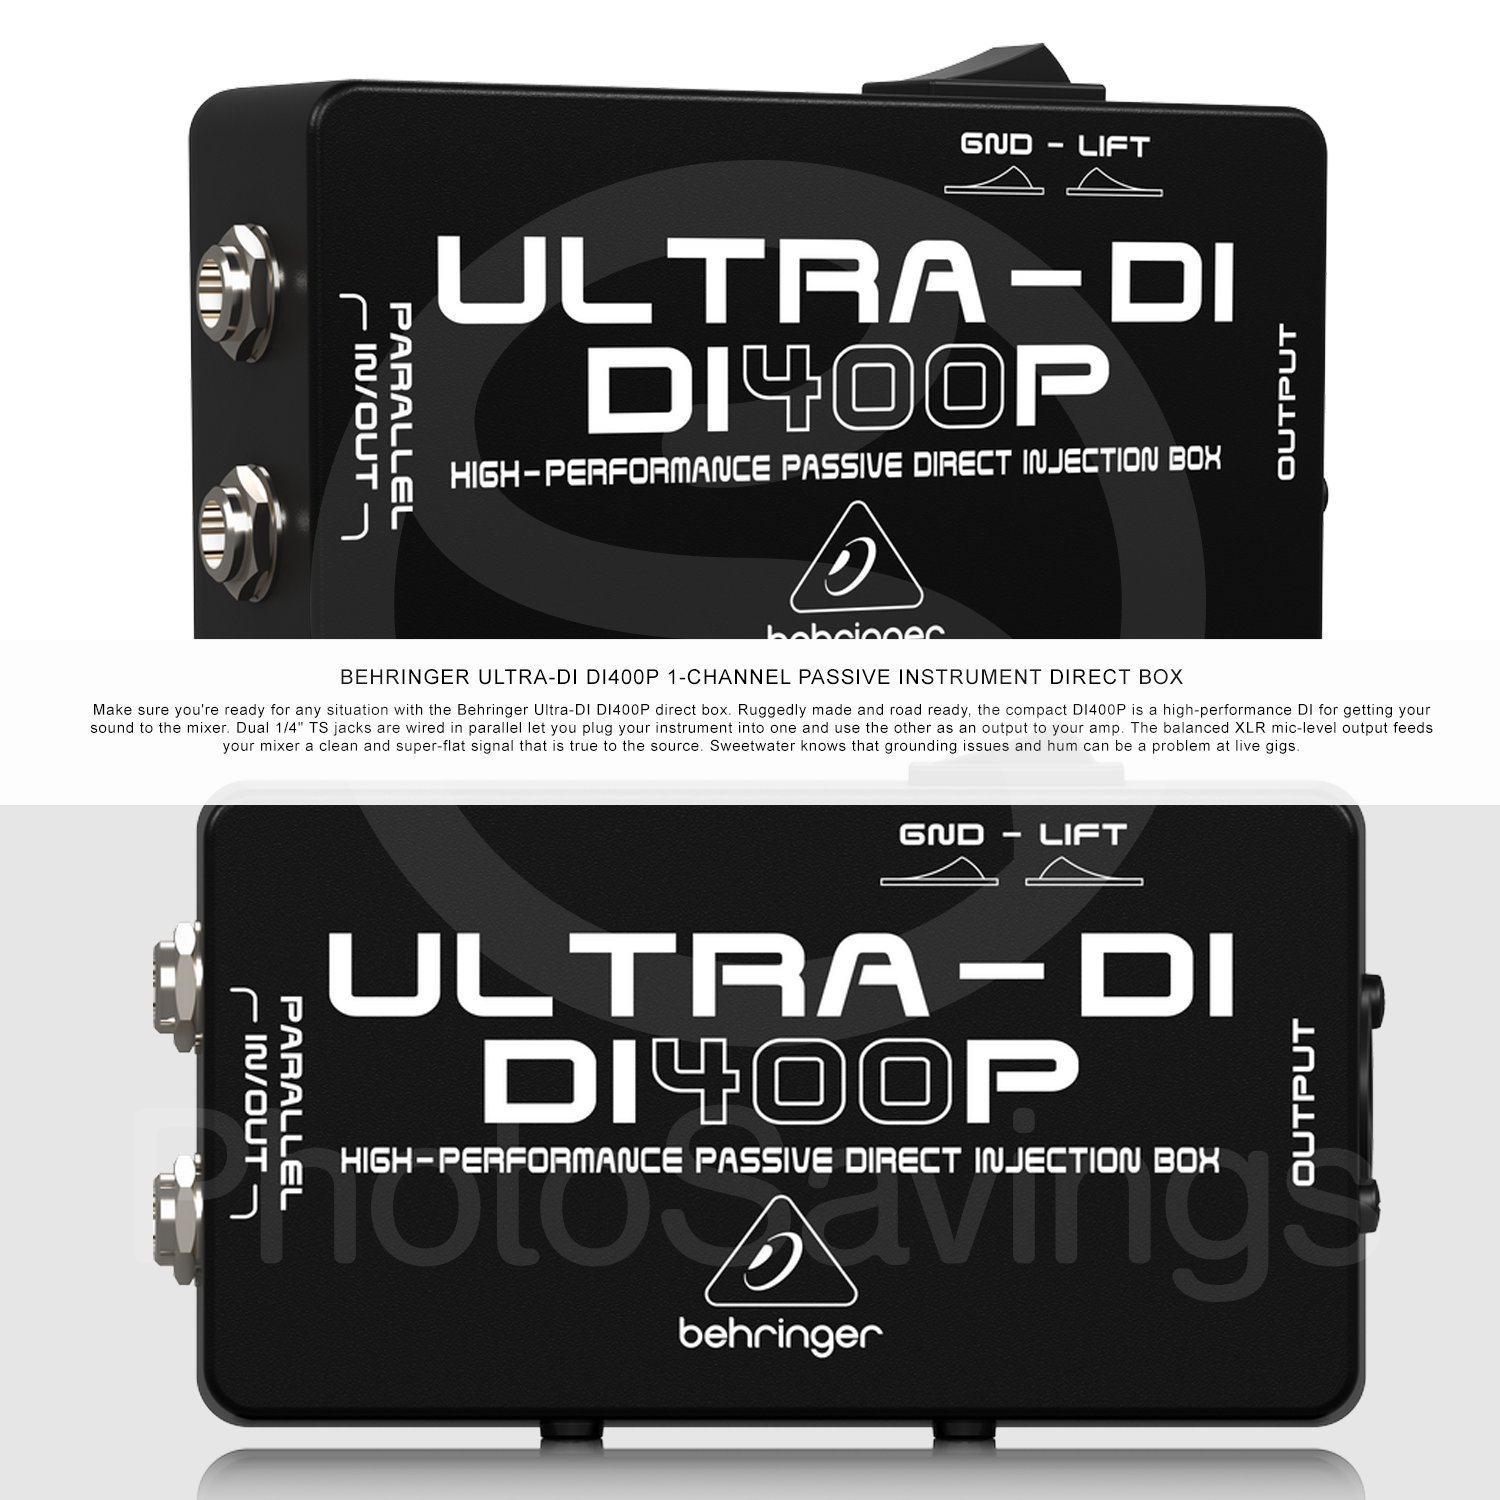 Behringer di400p ULTRA-DI pasivo Direct caja & accesorios Bundle w/XLR Cable, 2 x 1/4